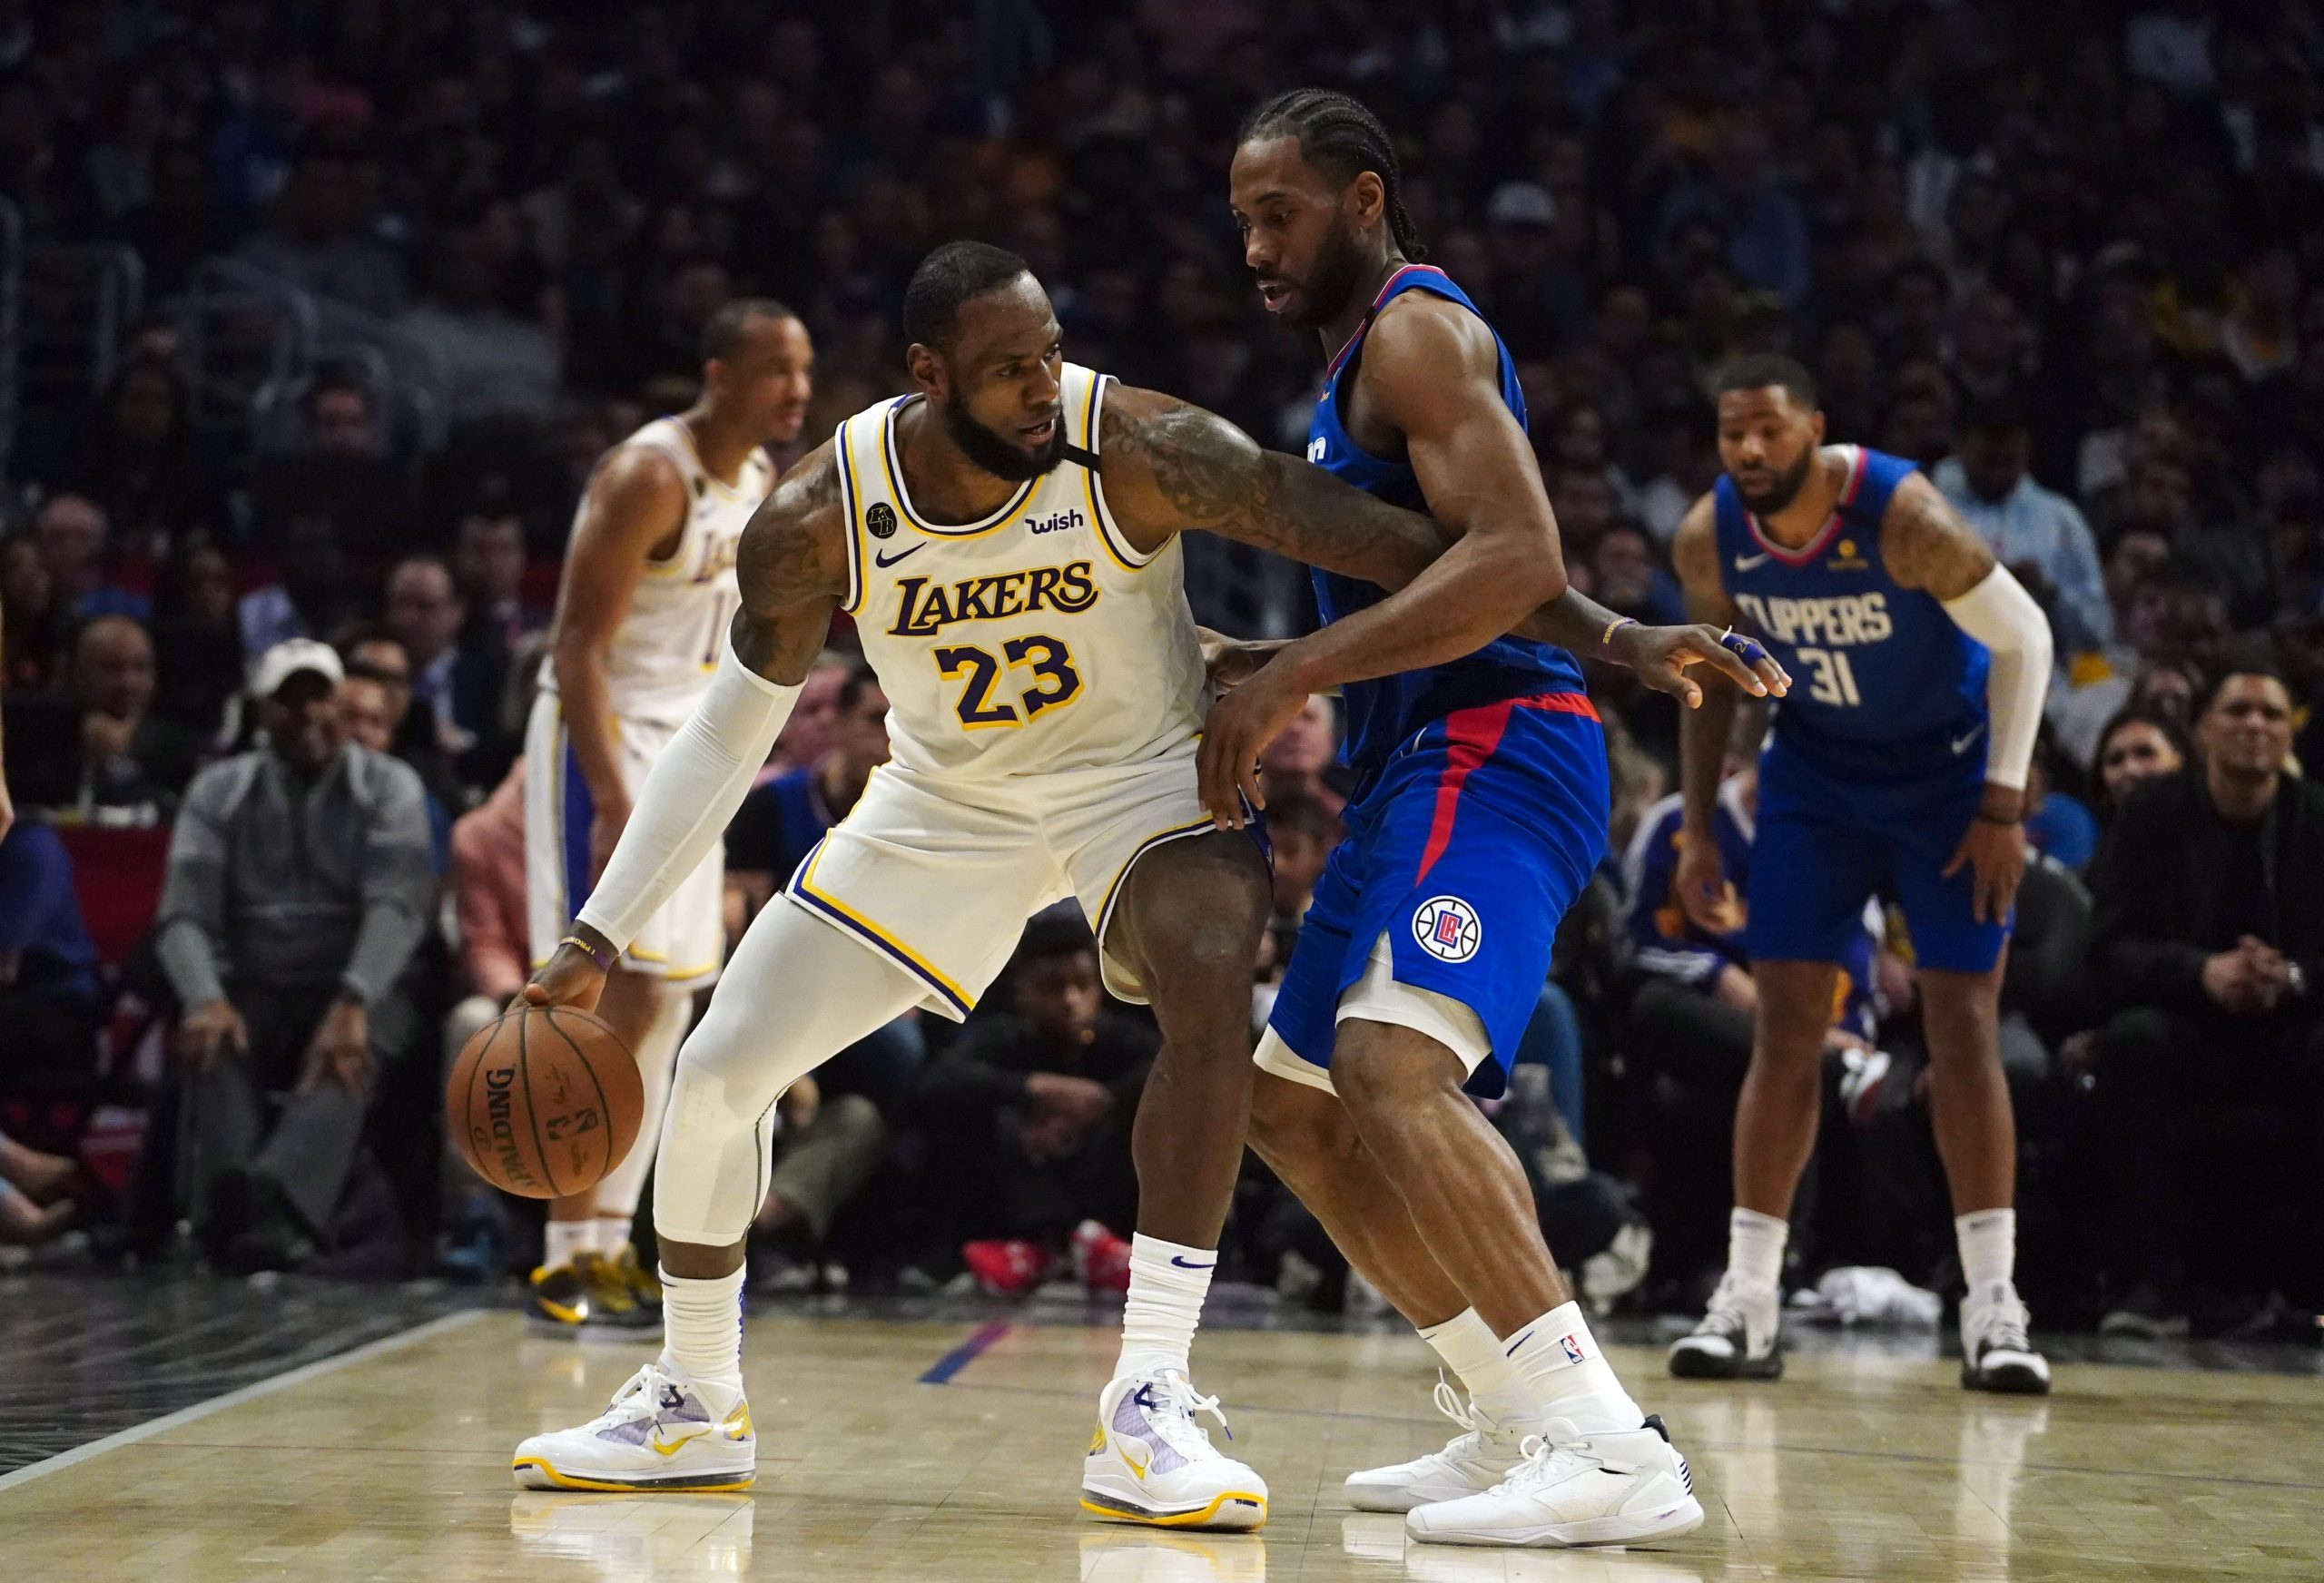 Previewing Opening Night of the NBA Bubble